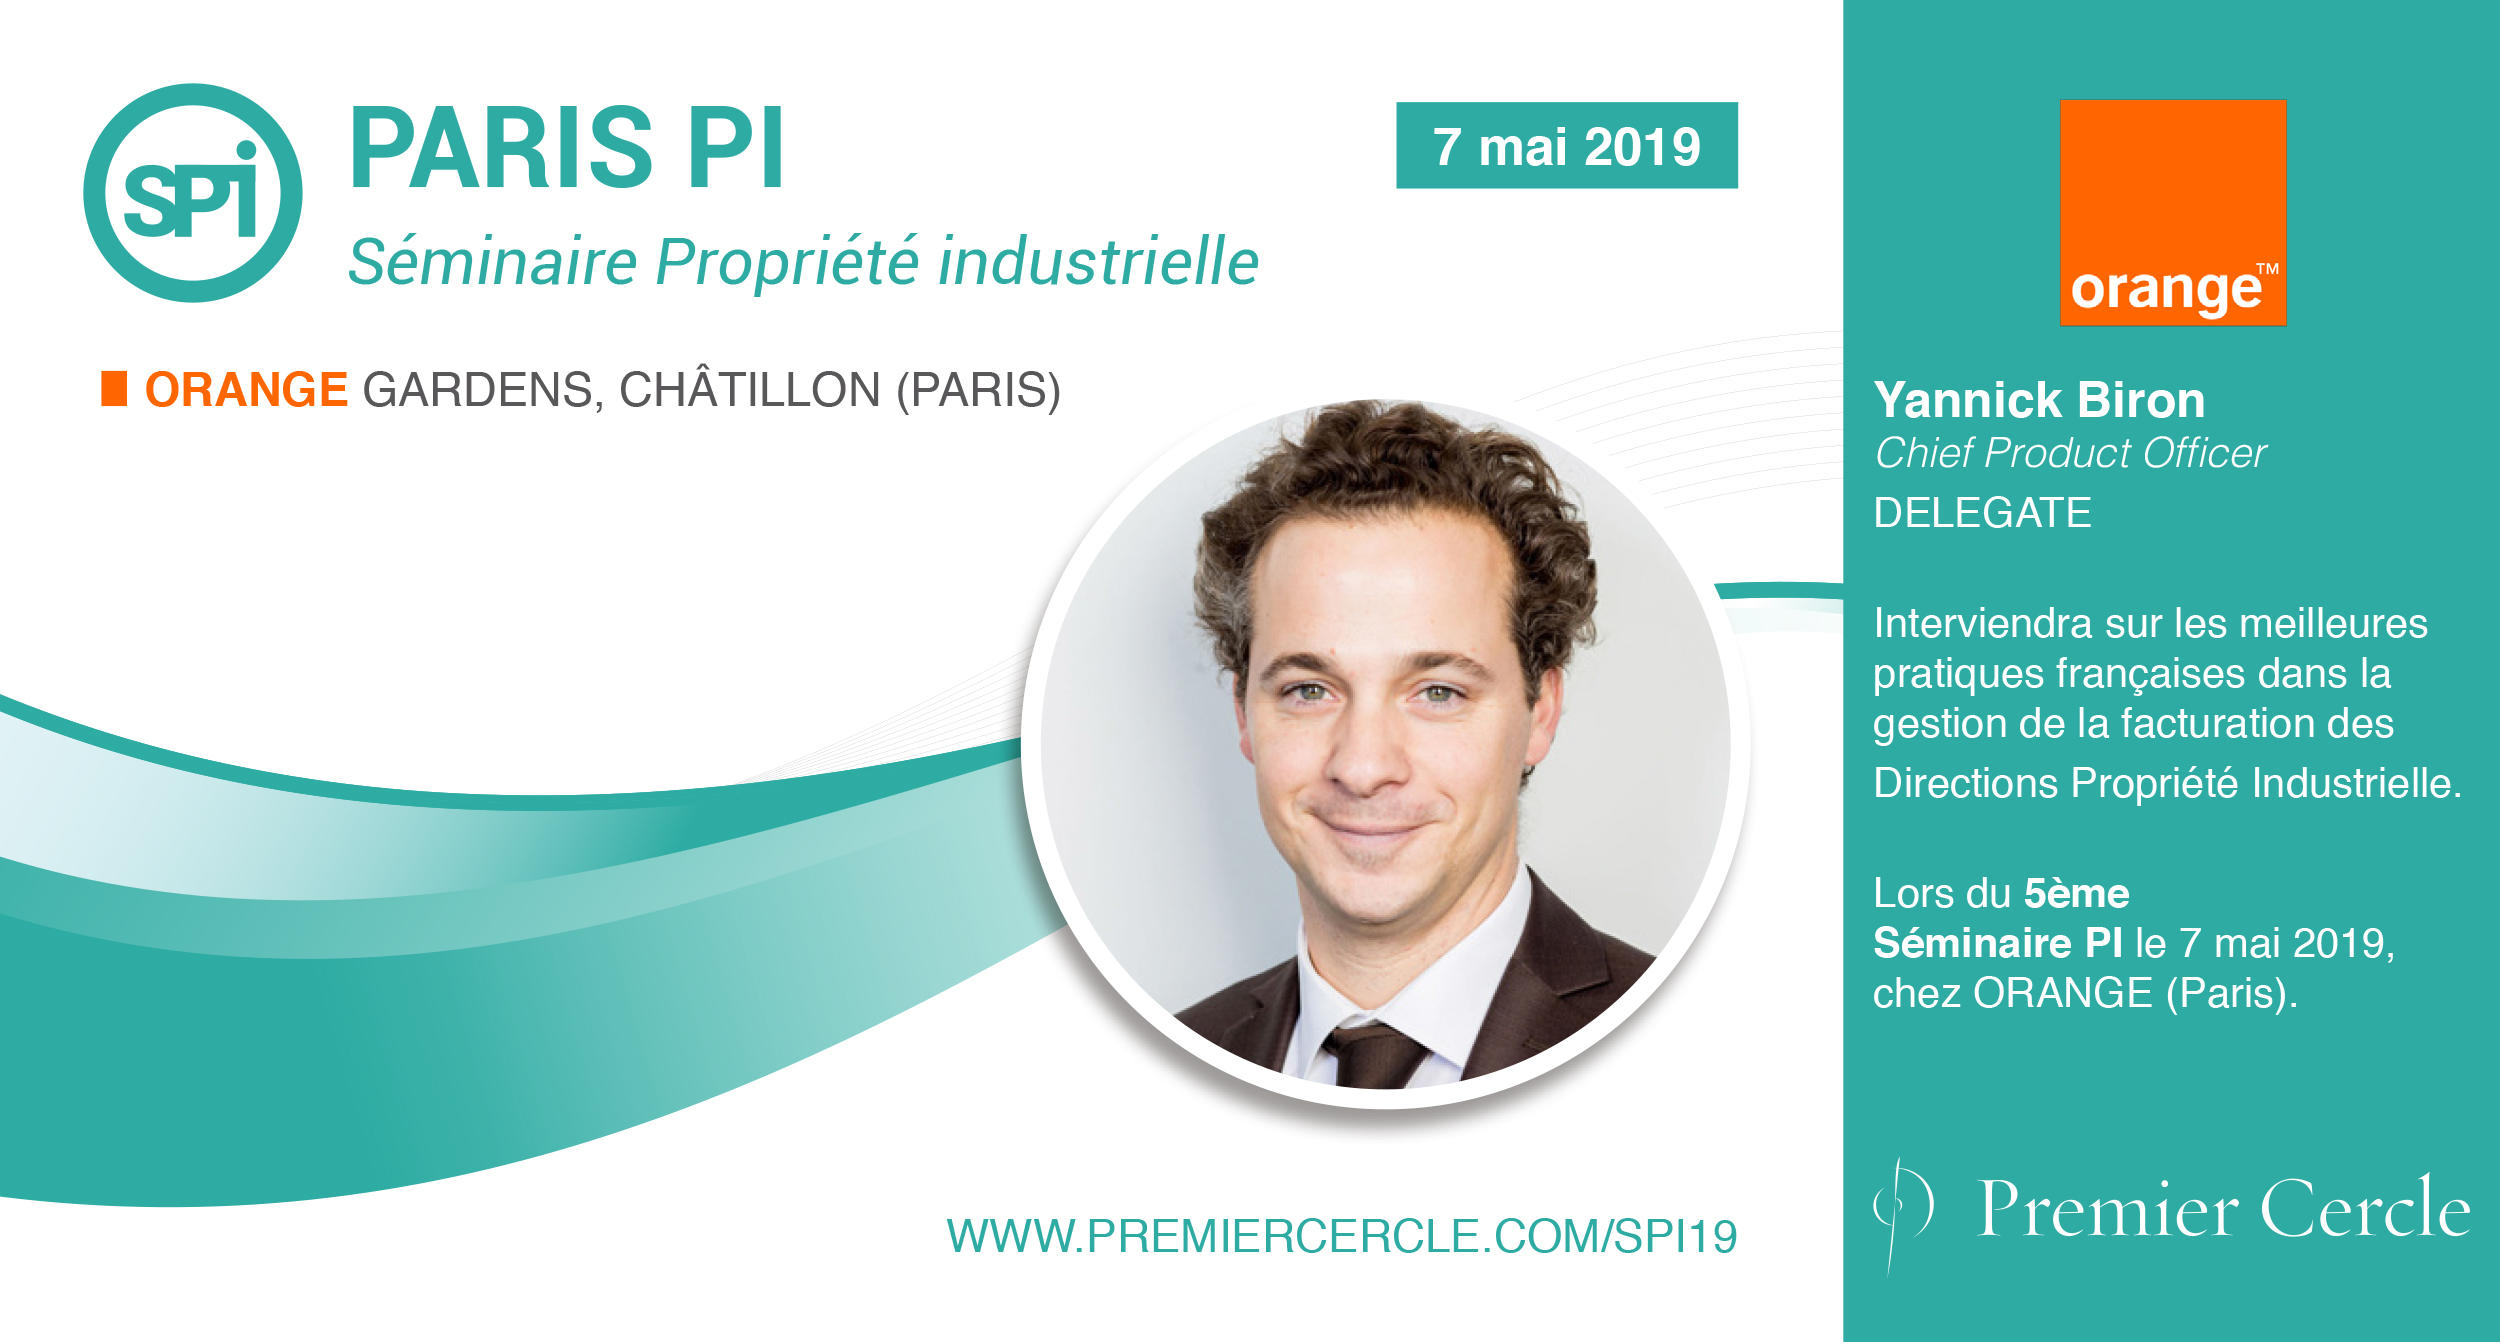 Yannick Biron, Chief Product Officer chez Delegate